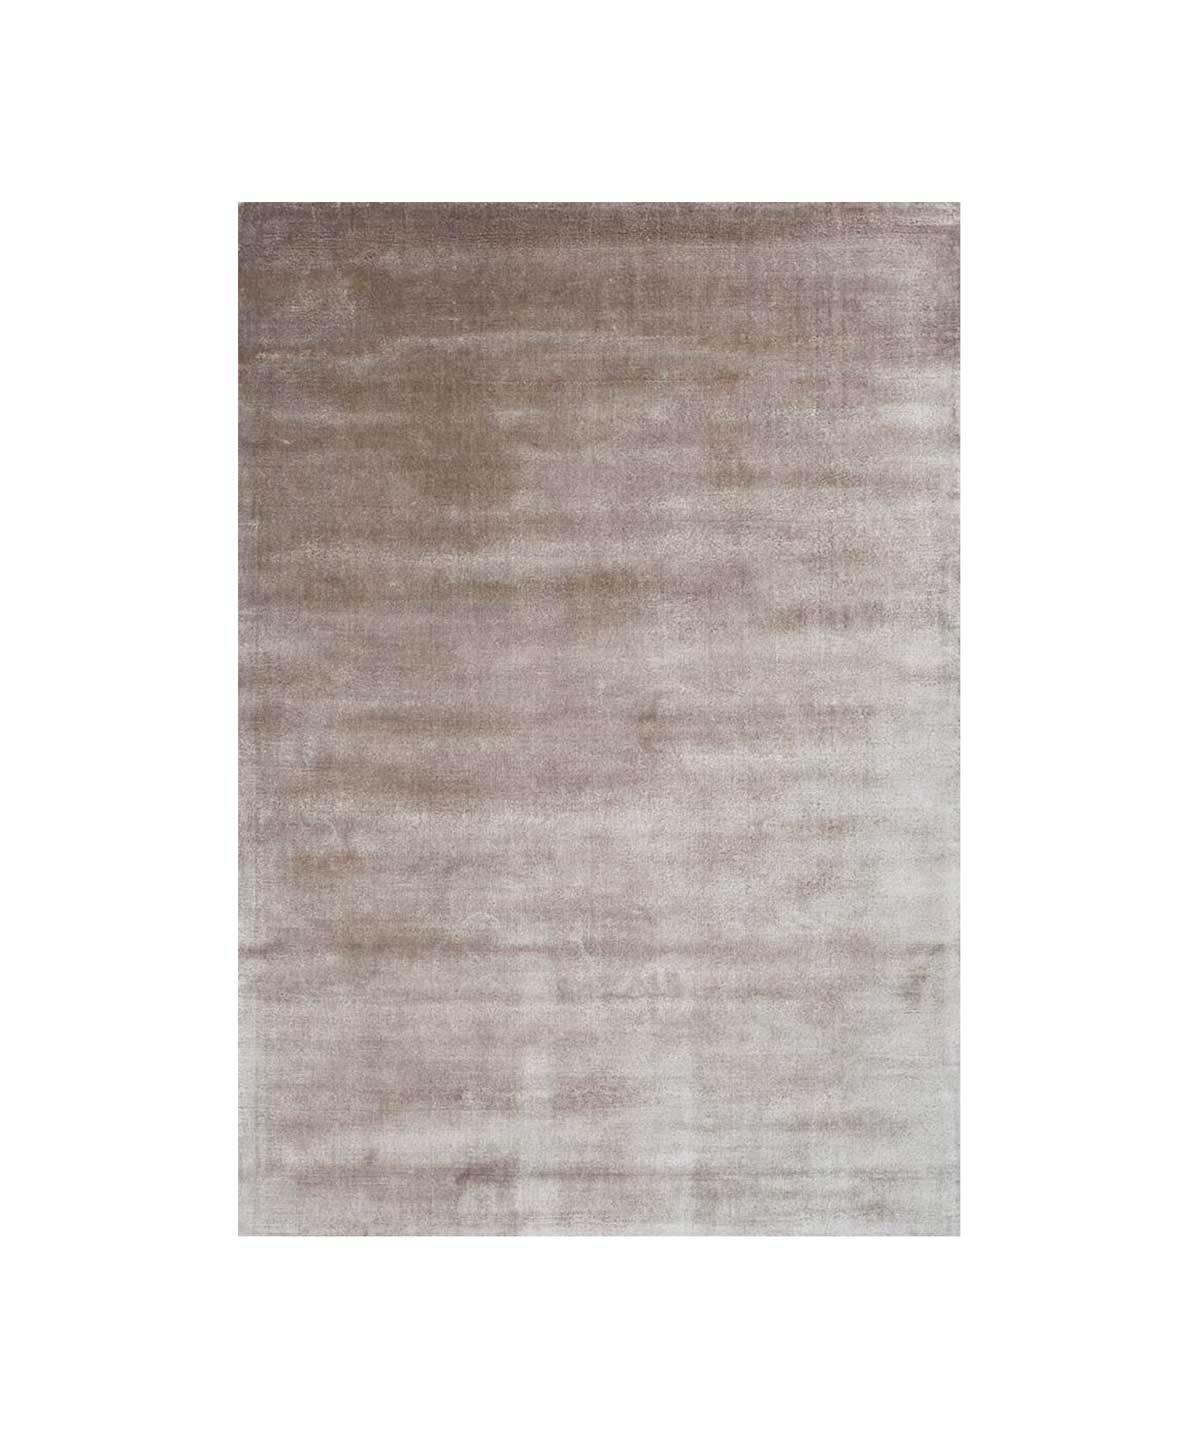 Lucens Rug in Beige by Loloi | TRNK